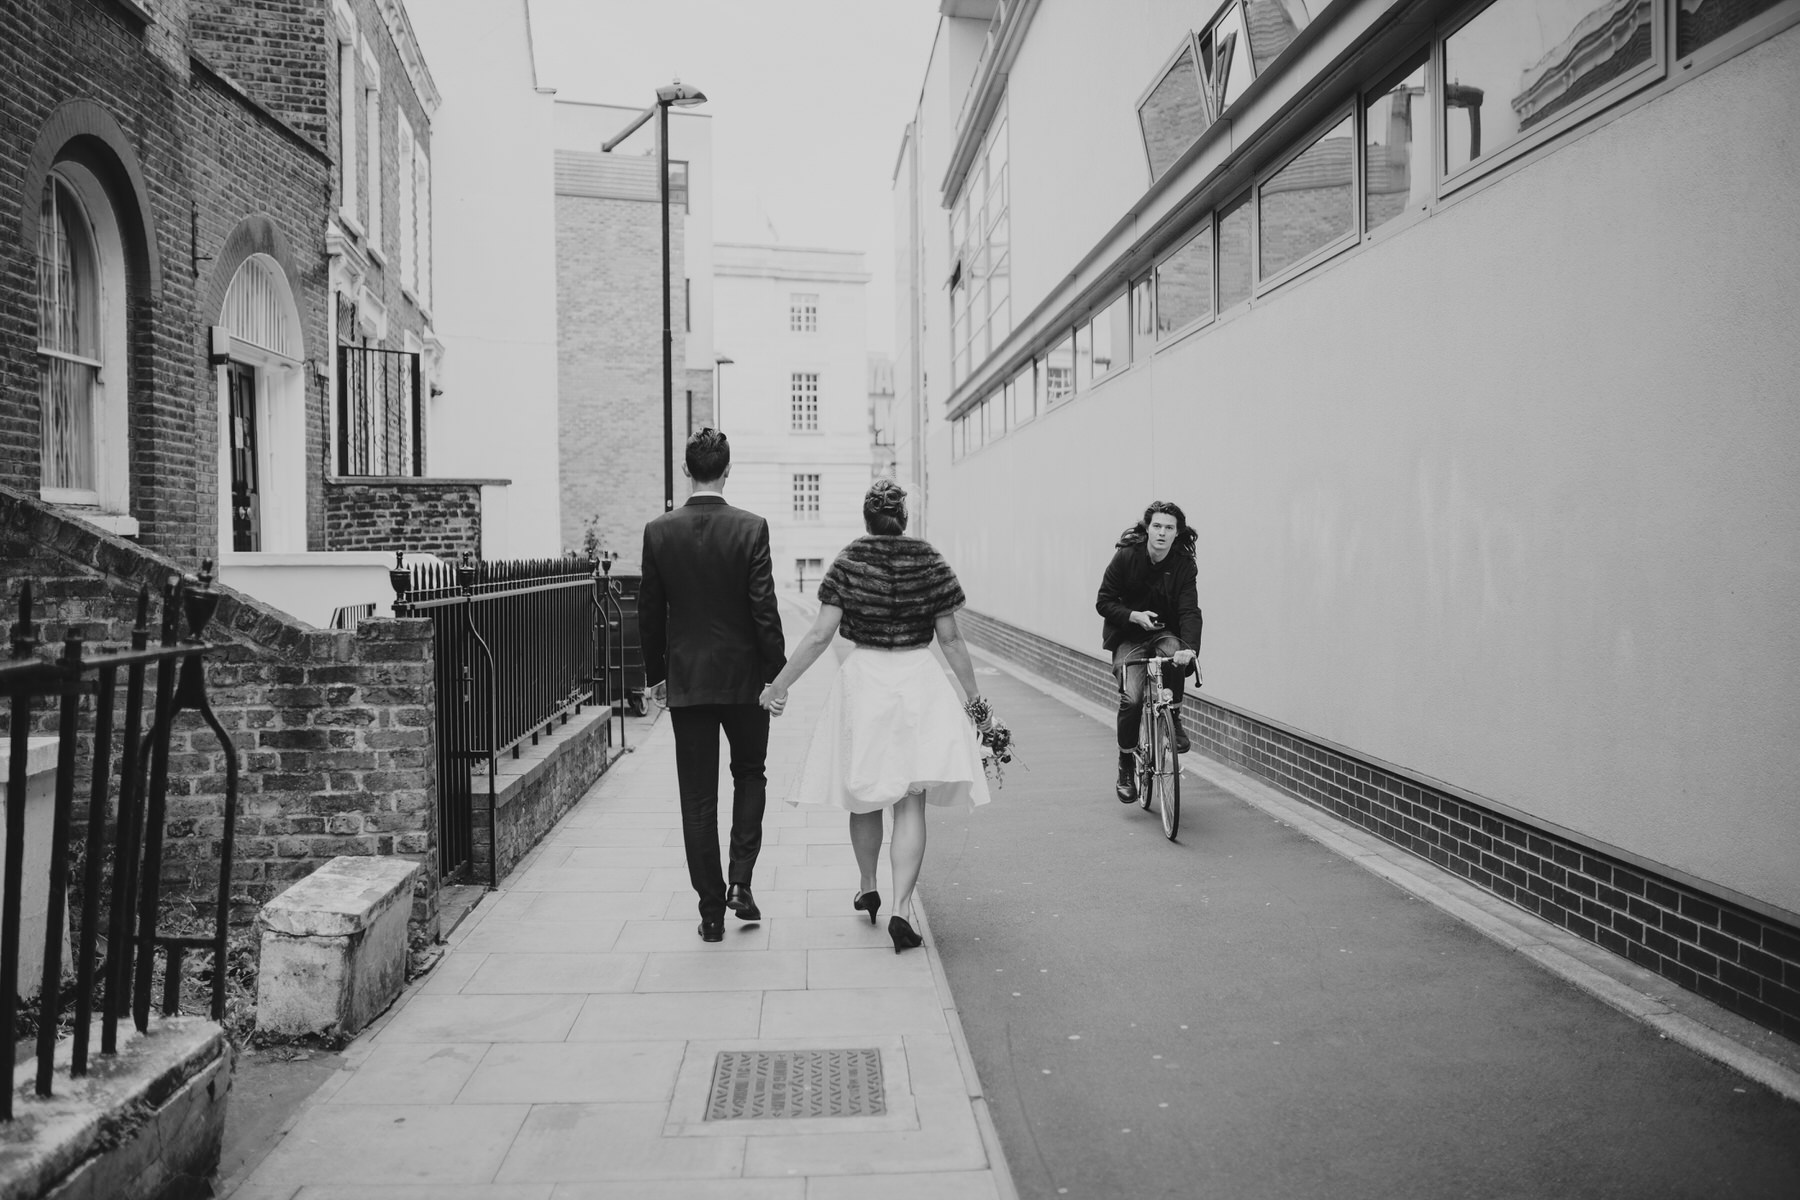 MS-Londesborough-Pub-wedding-Hackney-alternative-photographer-85-reportage-wedding-photographer-London-couple-walking.jpg